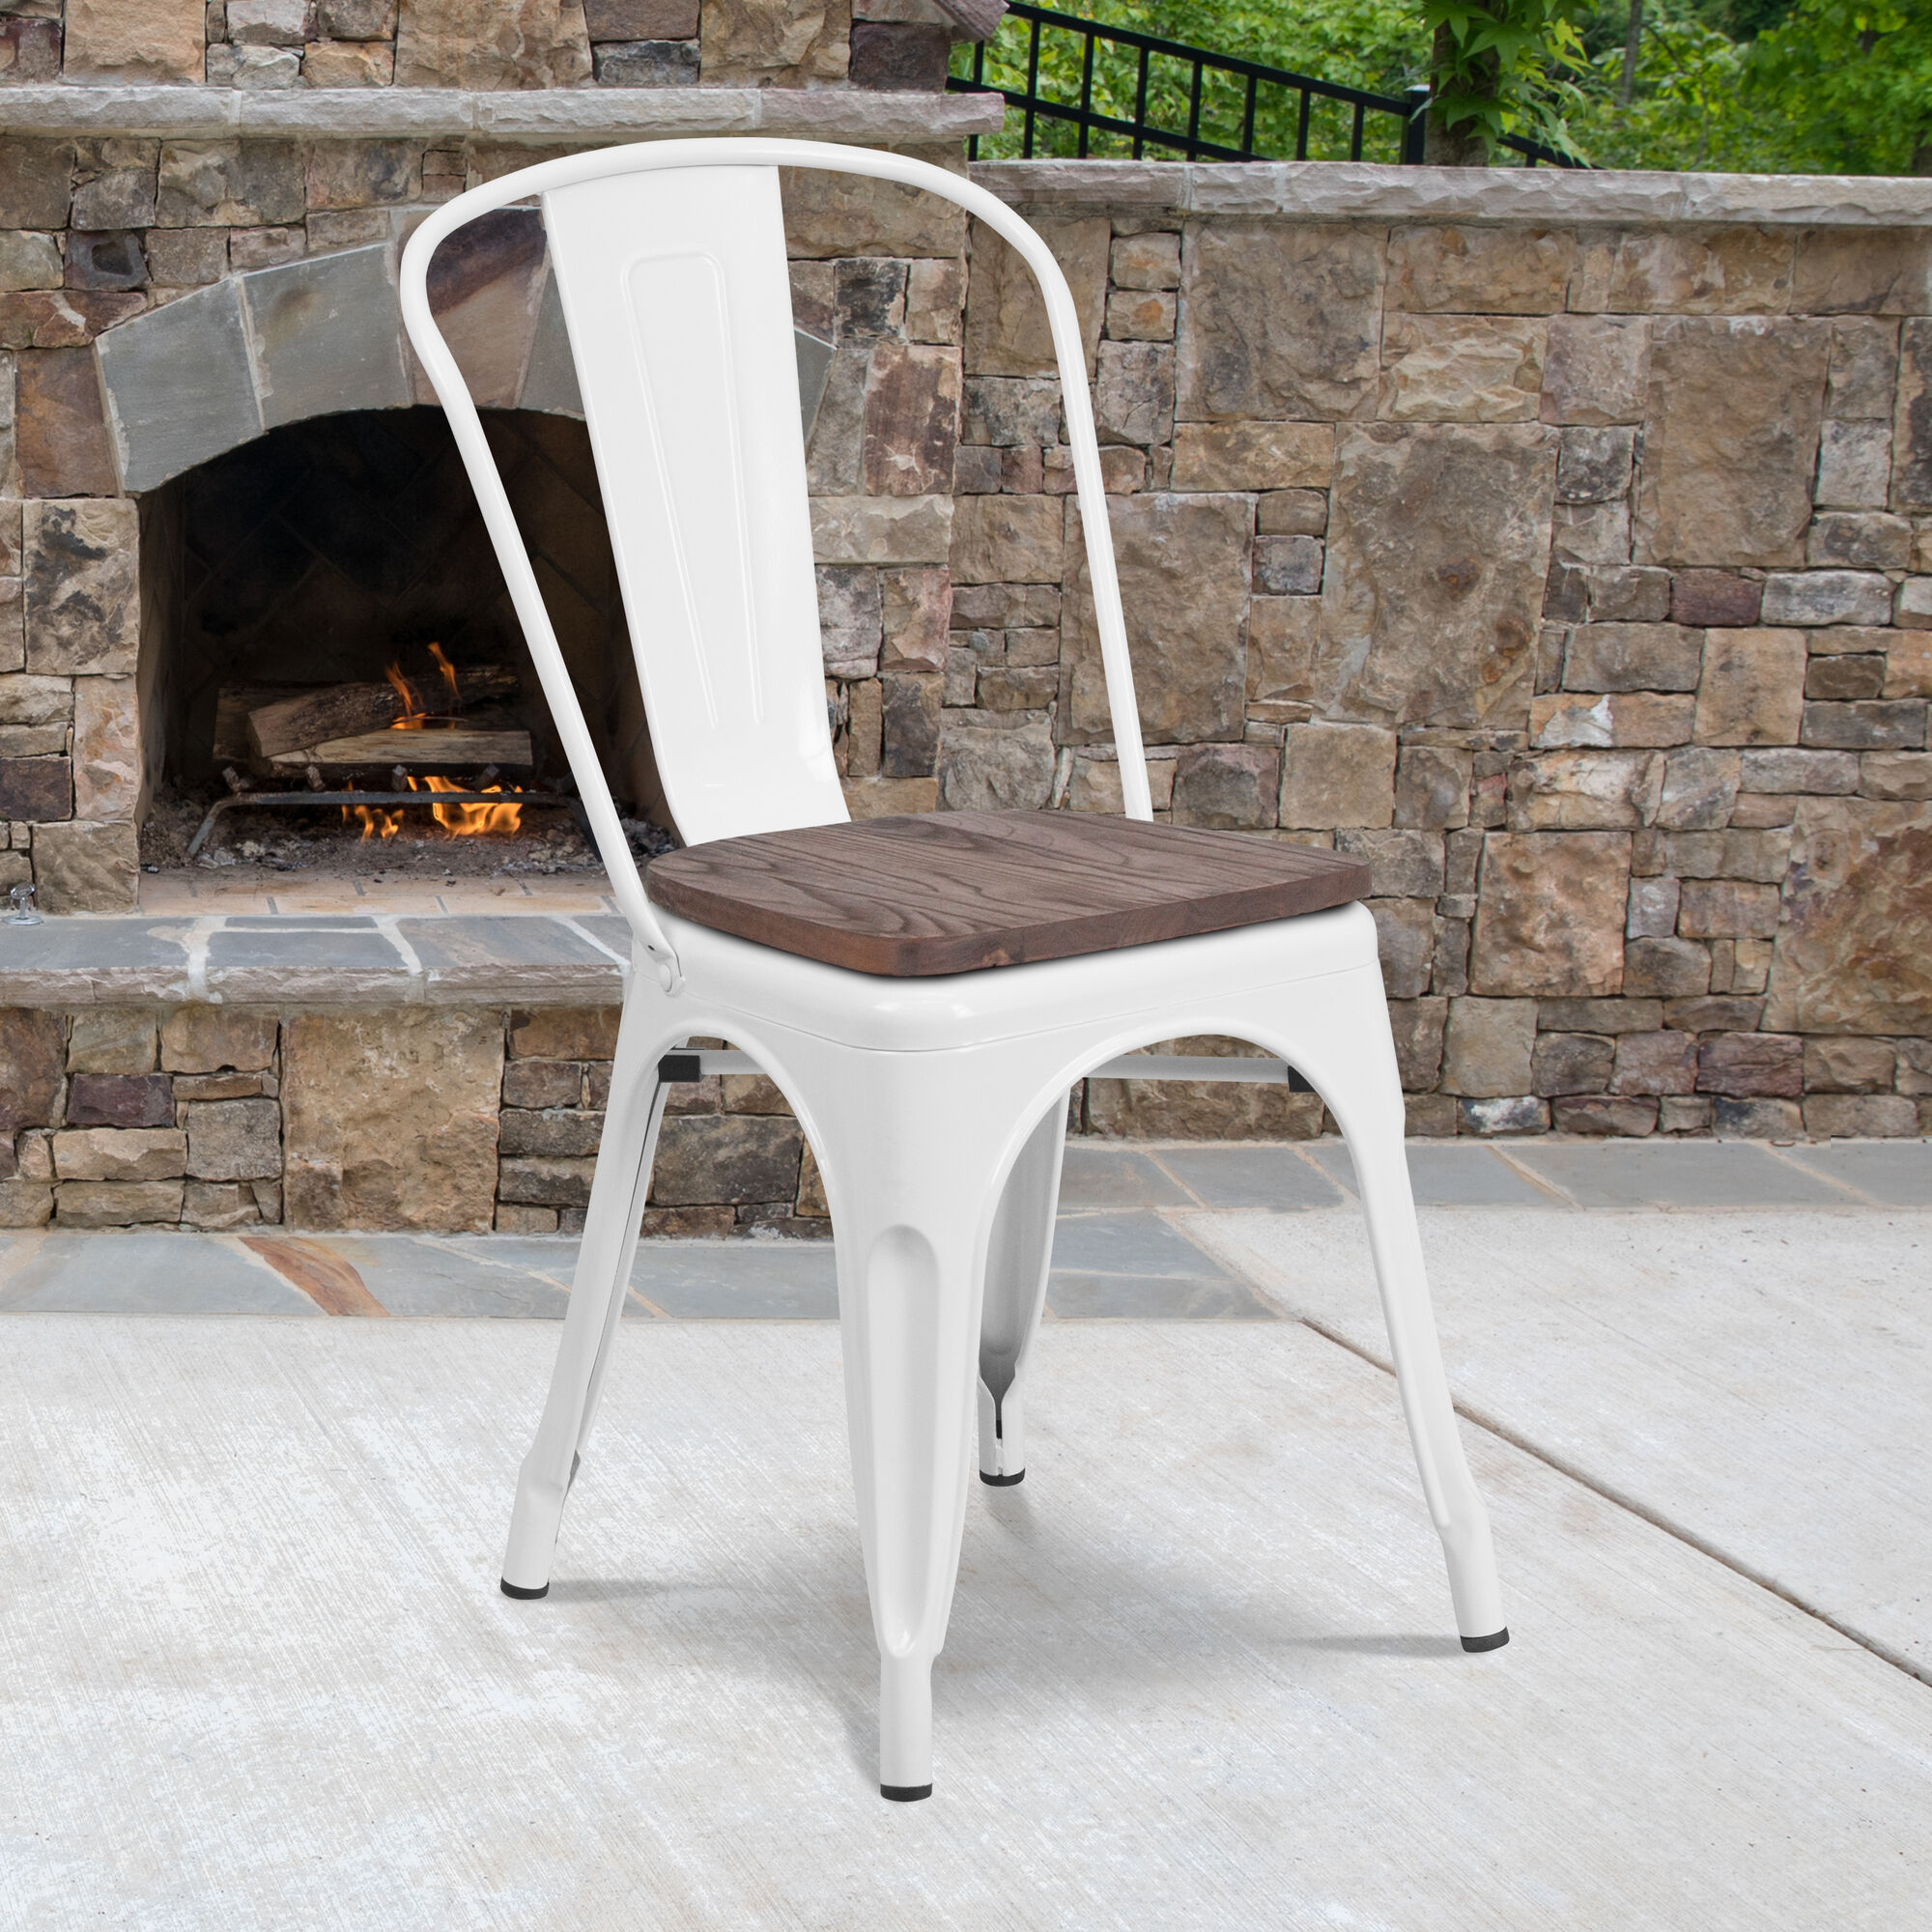 White Metal Stack Chair Ch 31230 Wh Wd Gg Stackchairs4less Com